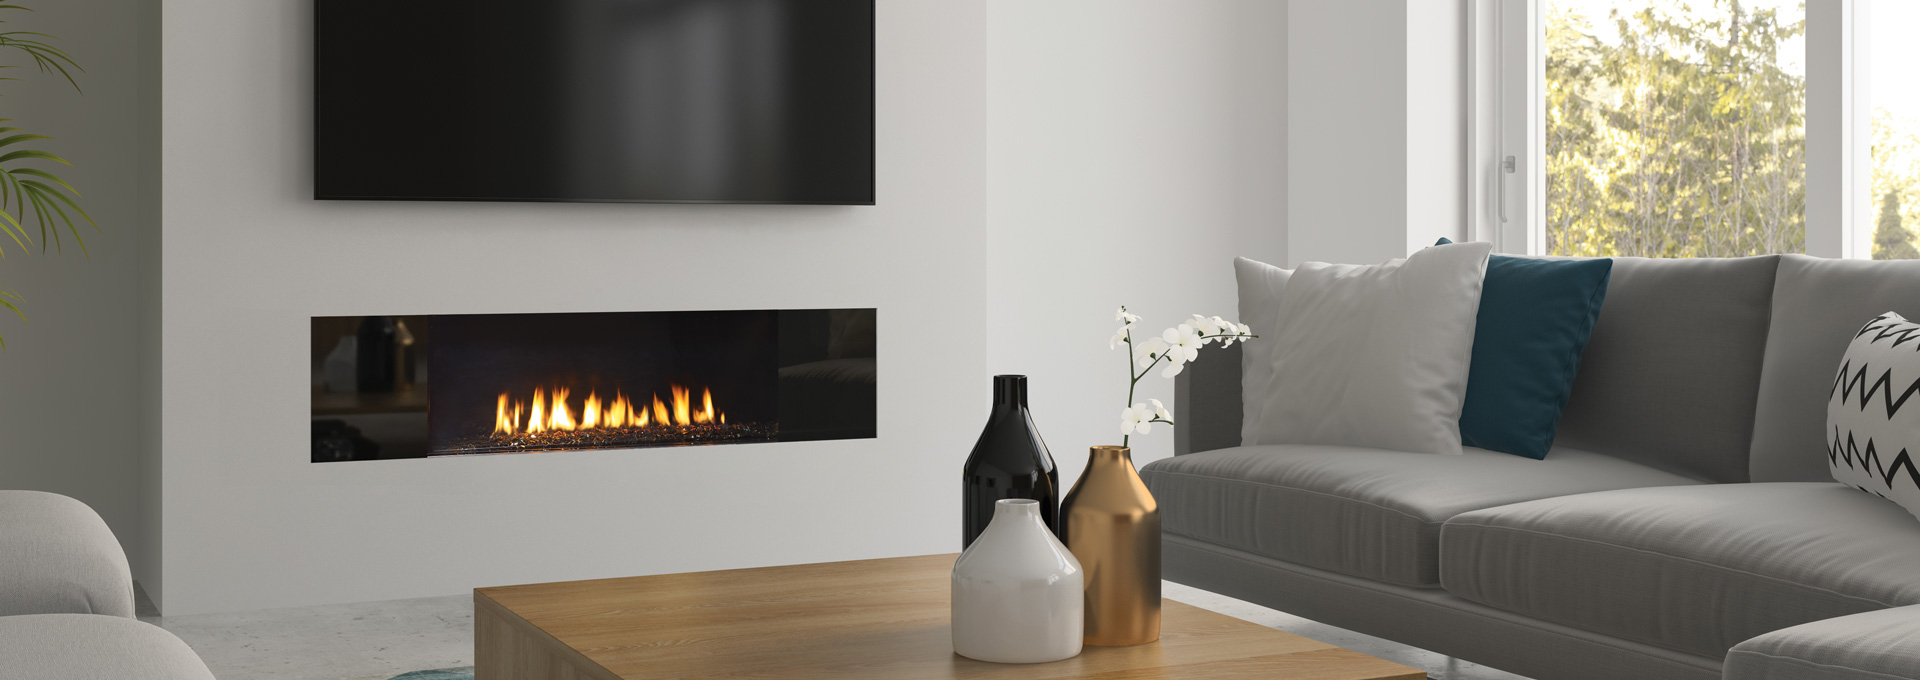 regency designer fireplace gas series b modern corner en fireplaces frameless products city